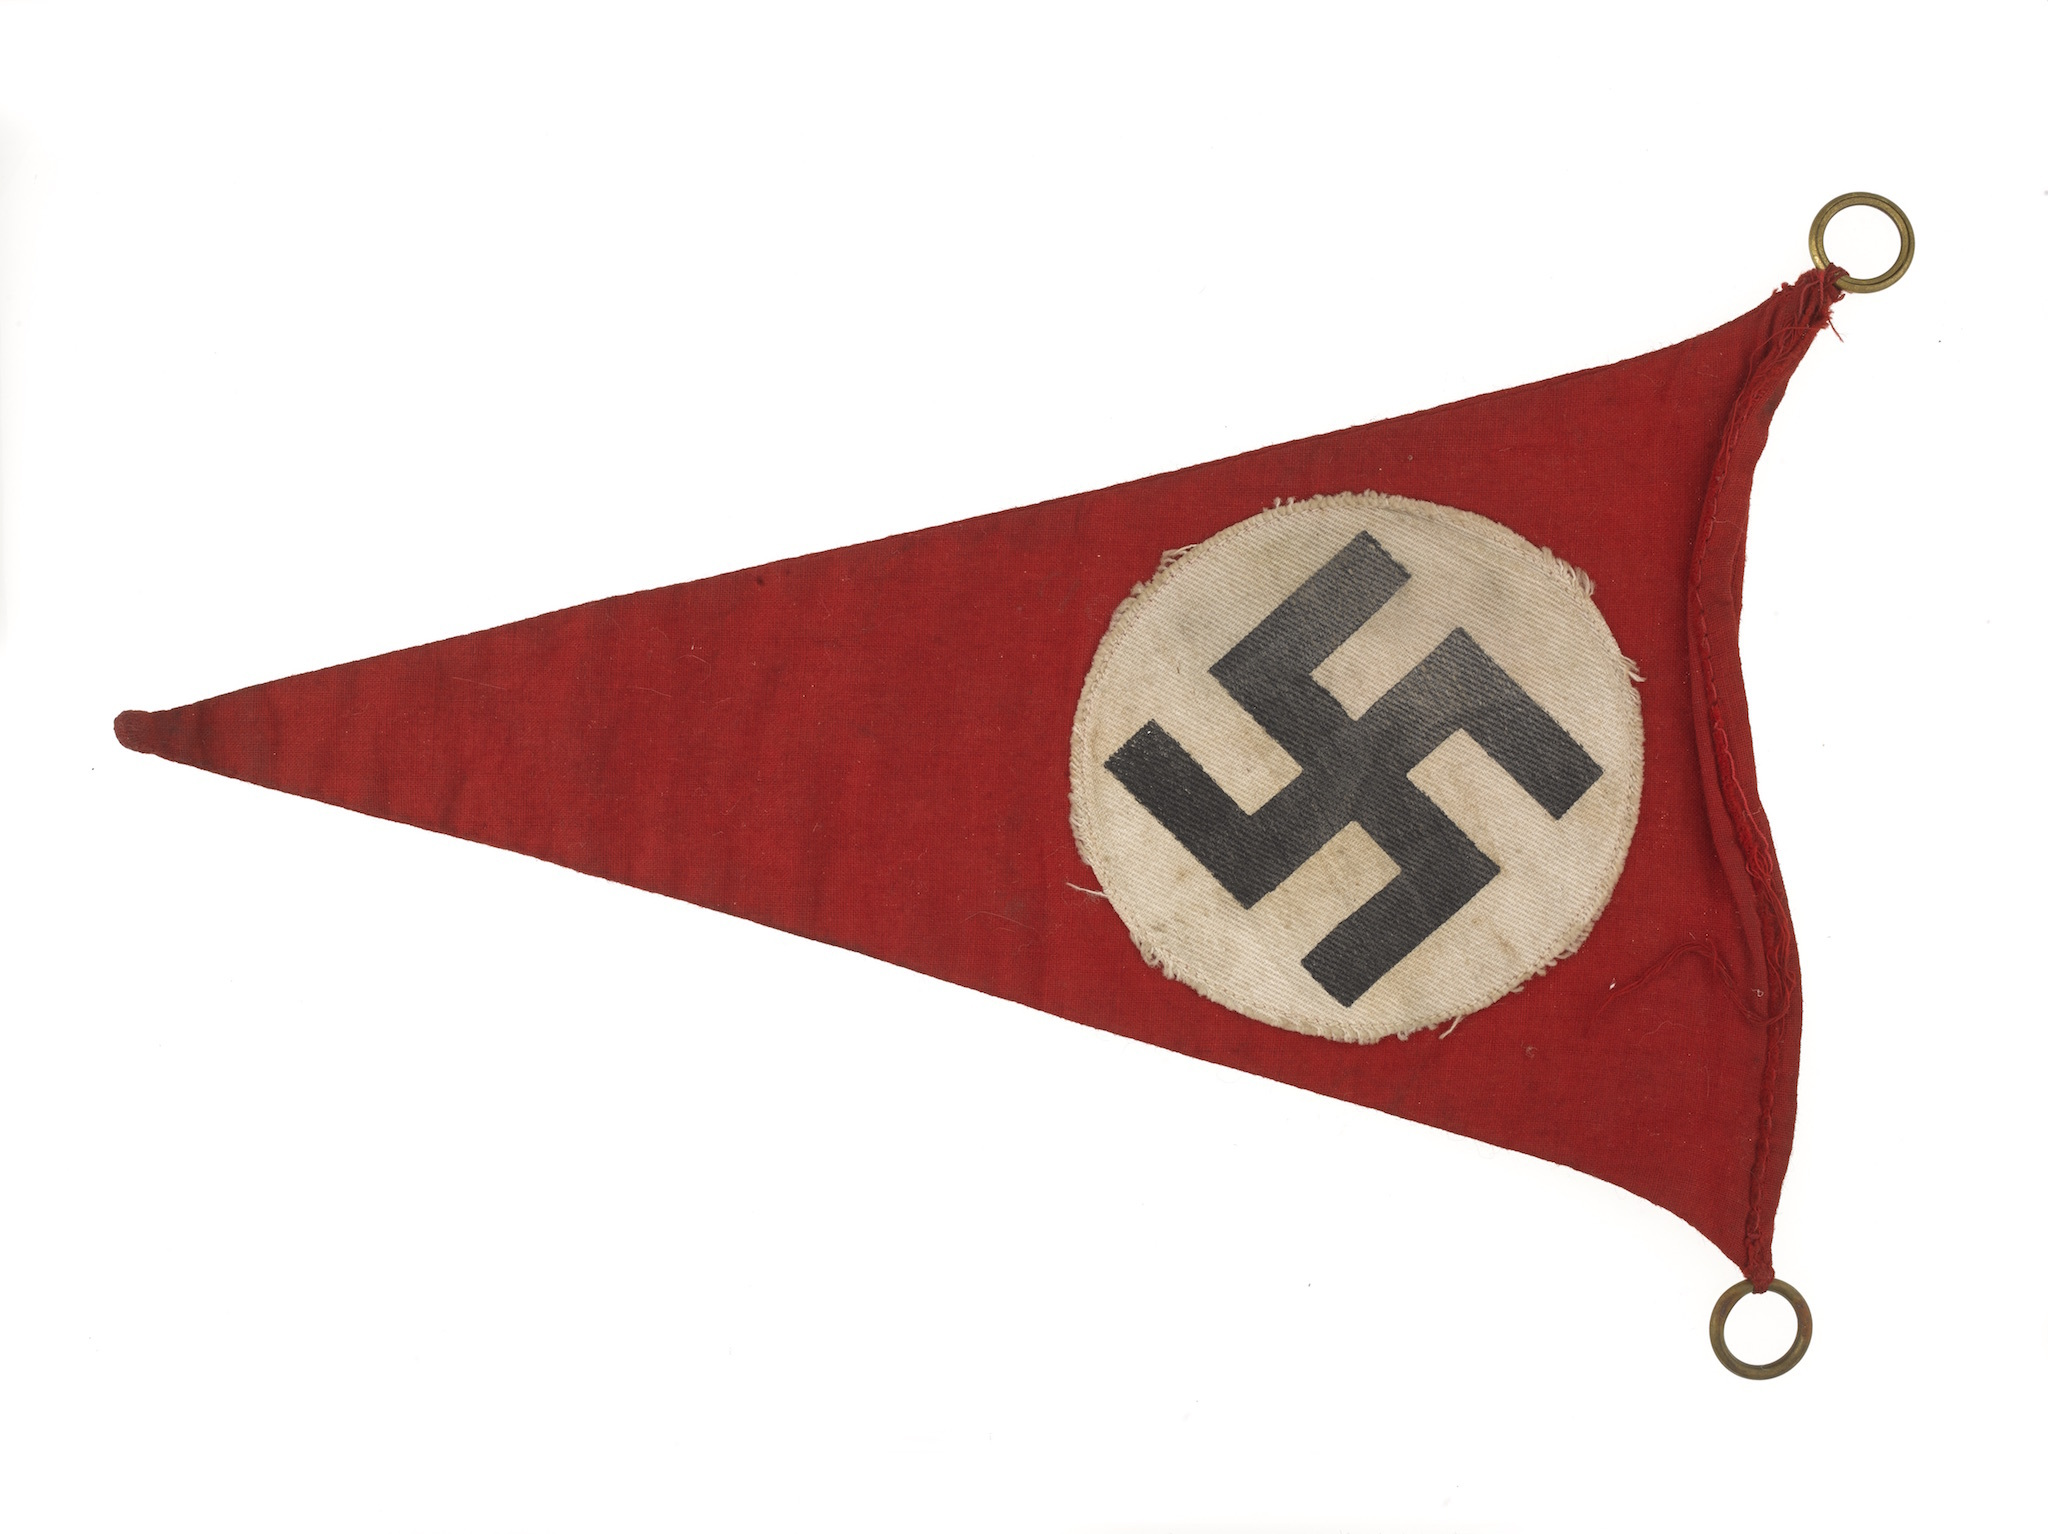 Nazi car pennant, 1945, from Insight Gallery at the National Army Museum, London